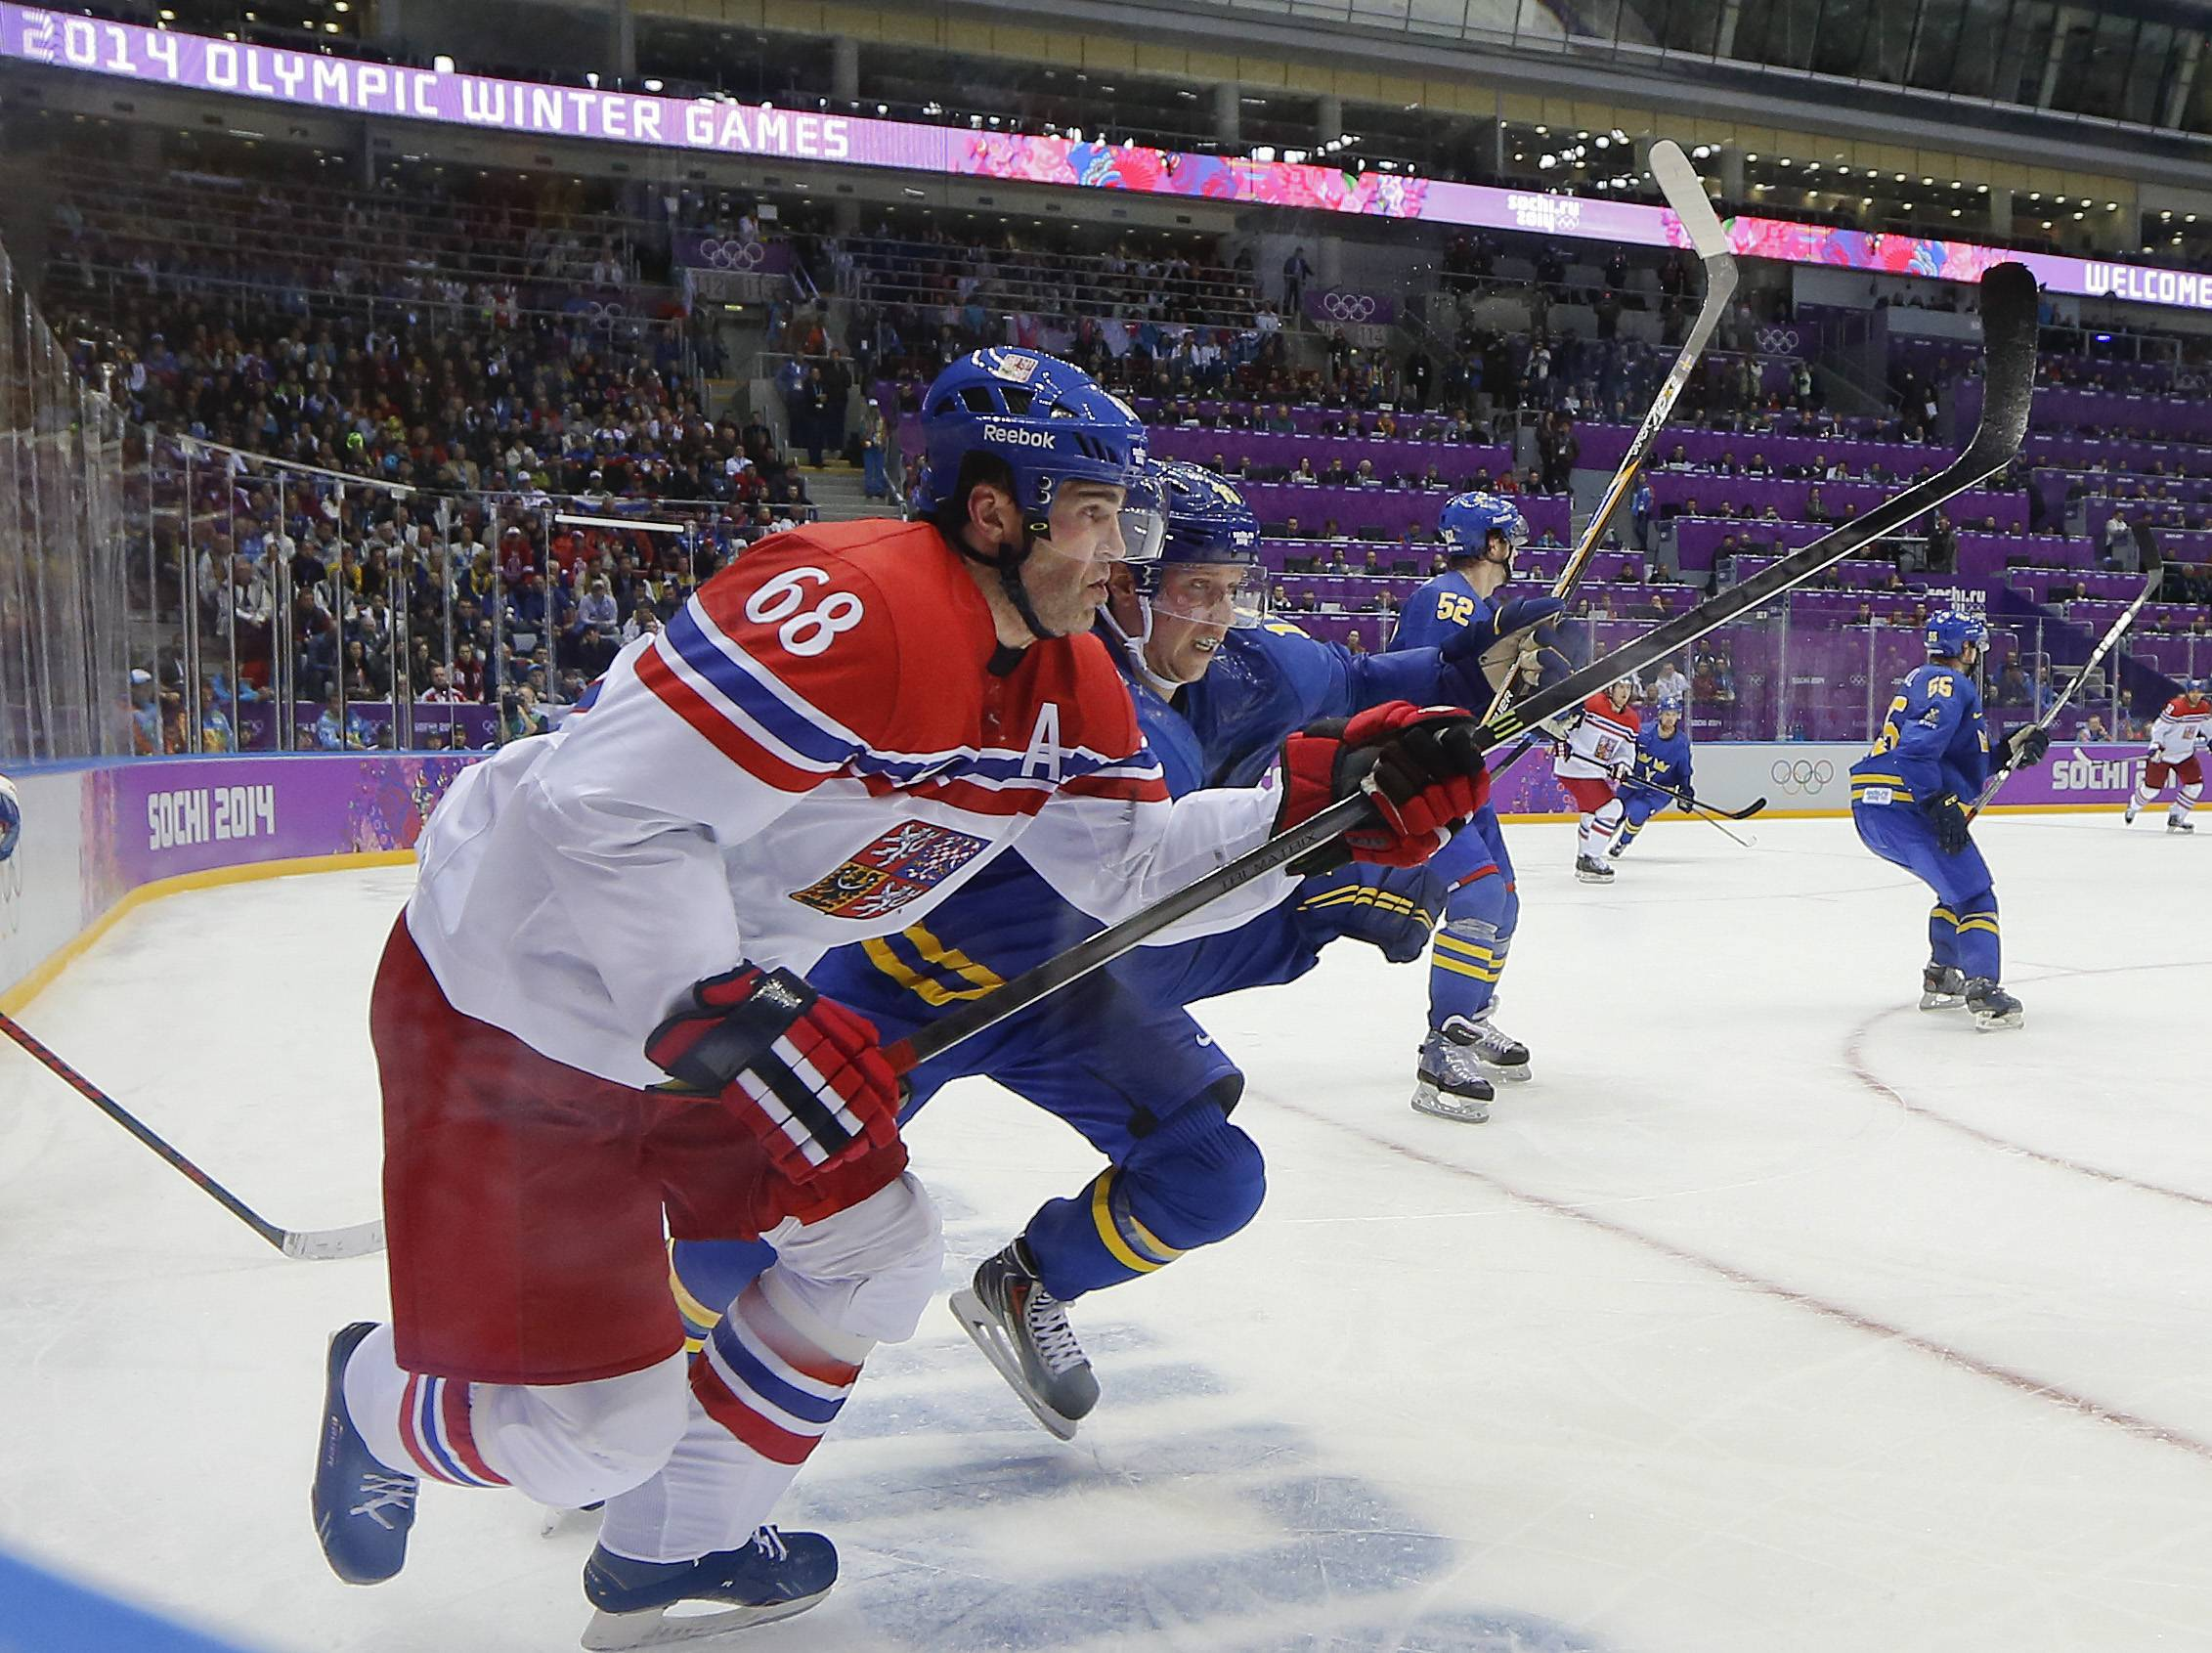 Czech Republic forward Jaromir Jagr and Sweden forward Loui Eriksson race after the puck in the third period.